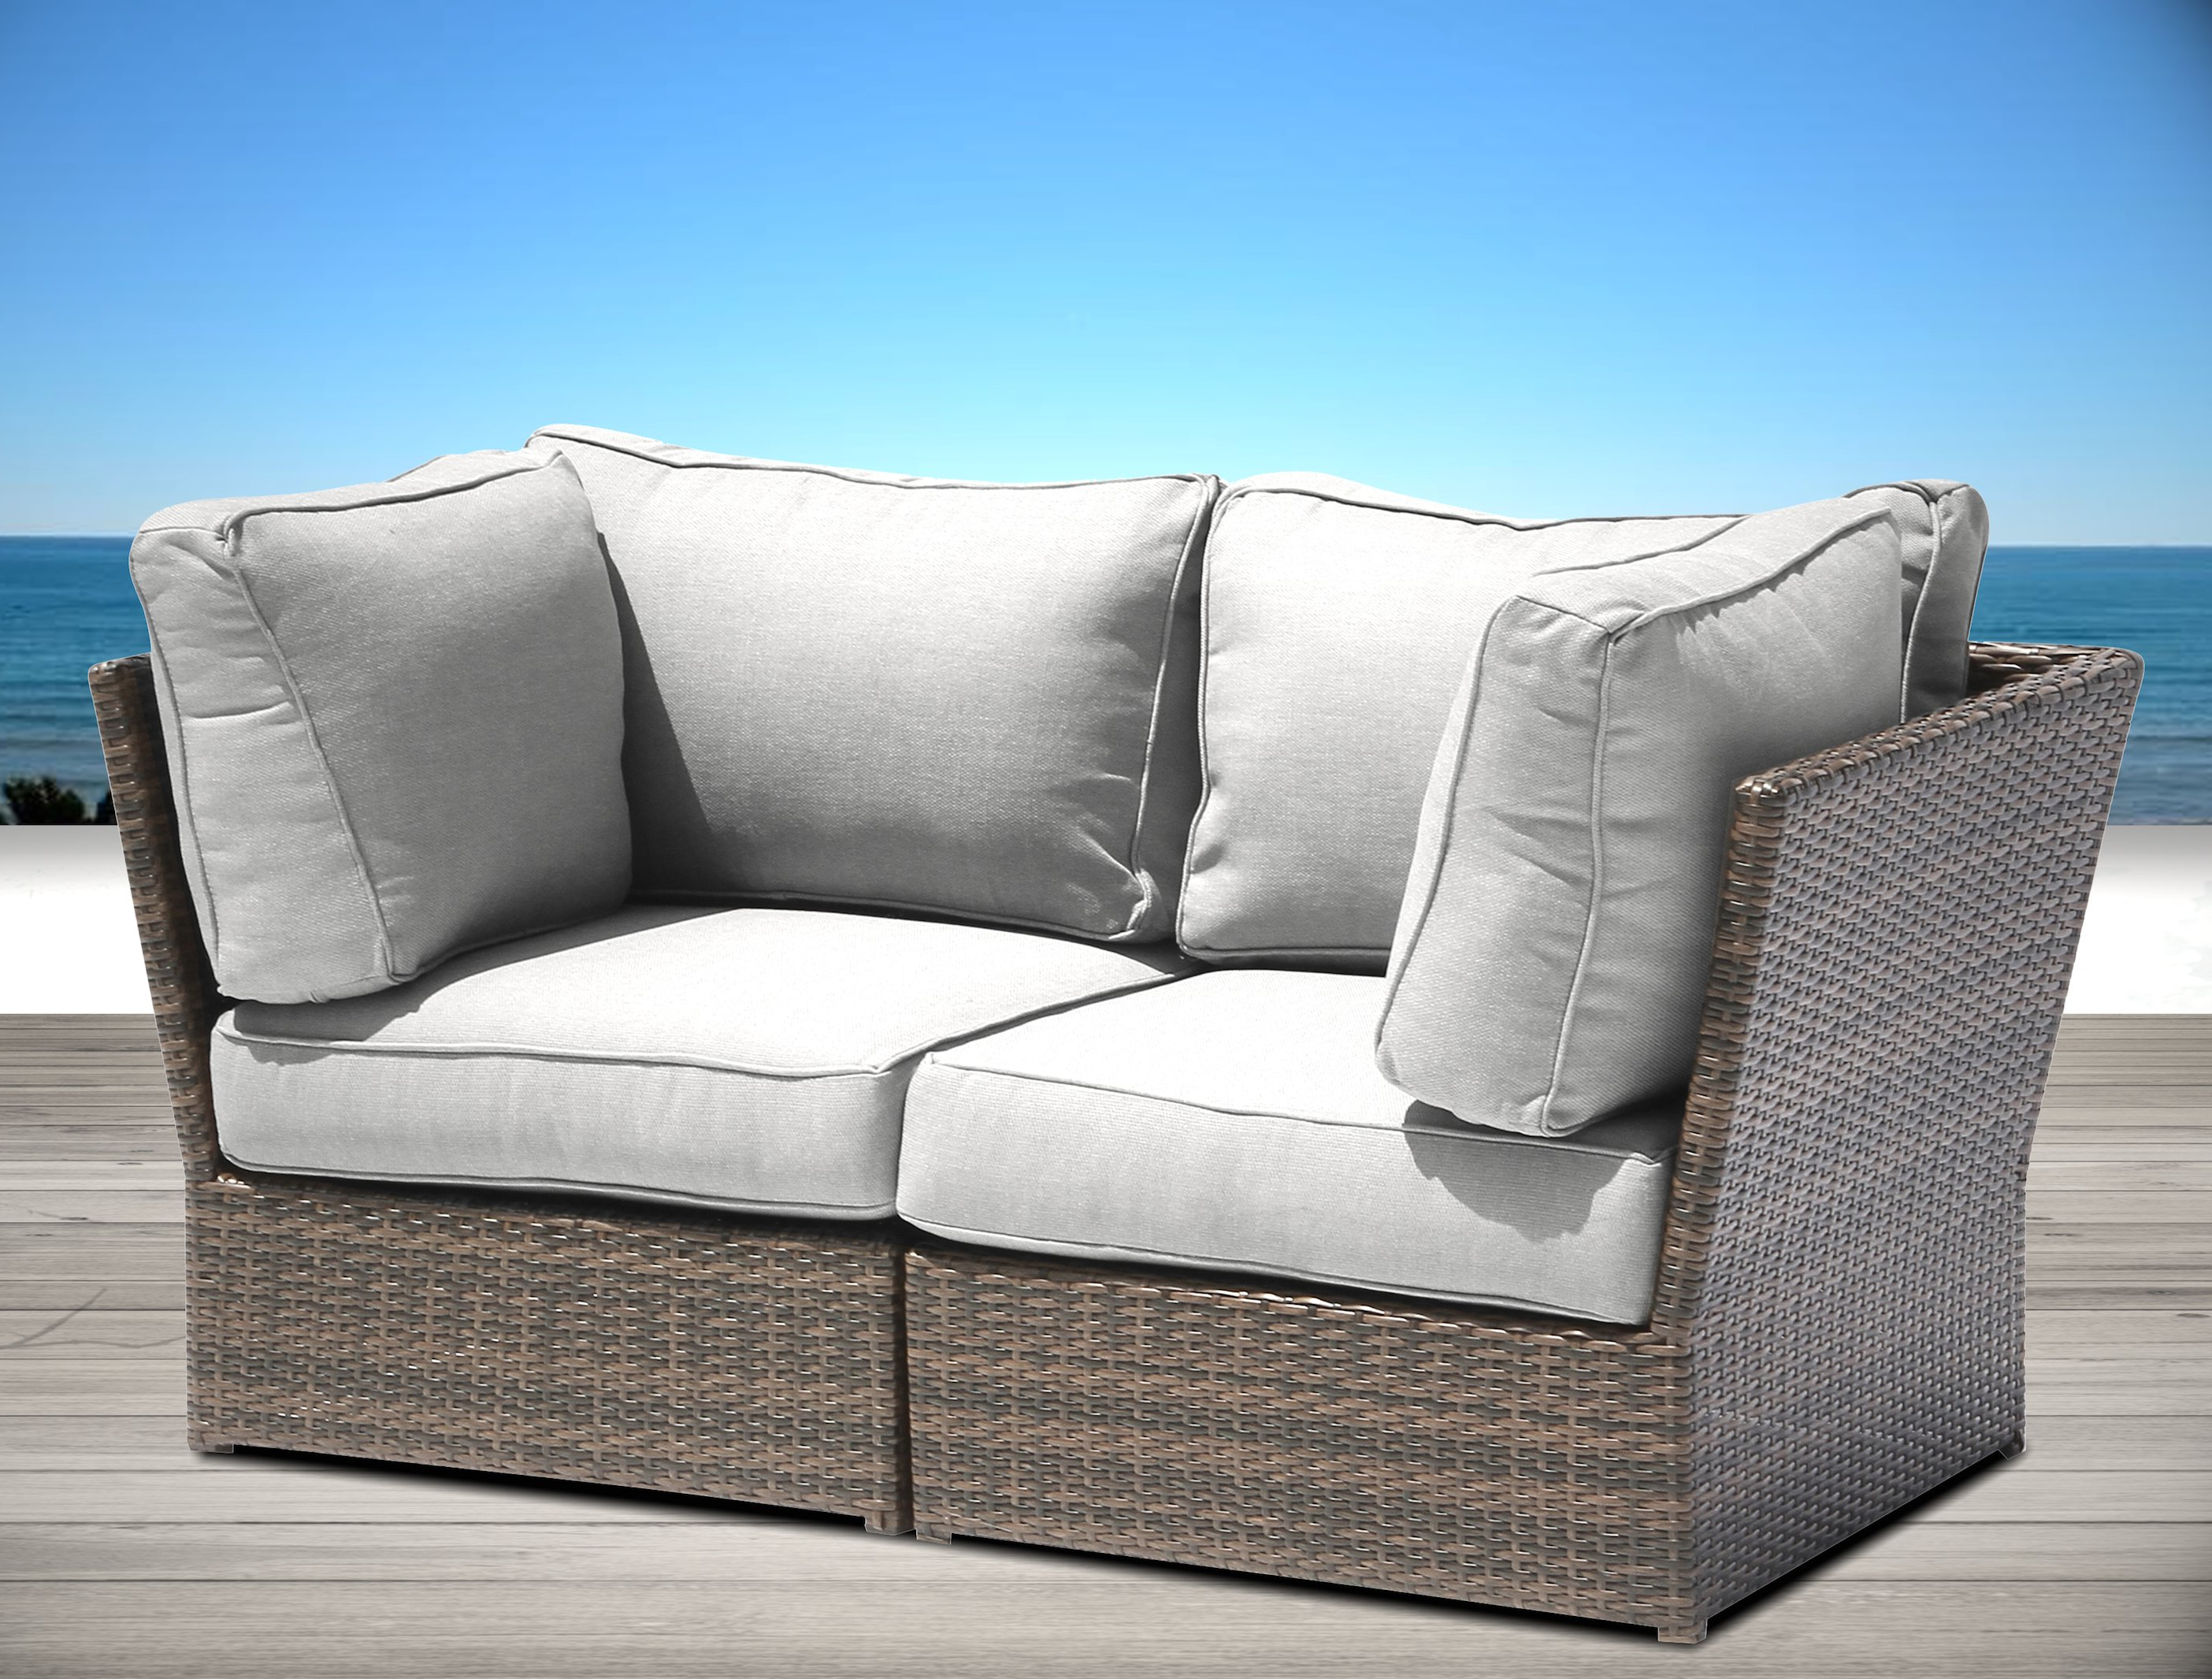 Mendelson Loveseats With Cushion With Regard To Most Recently Released Simmerman Loveseat With Cushions (View 4 of 20)